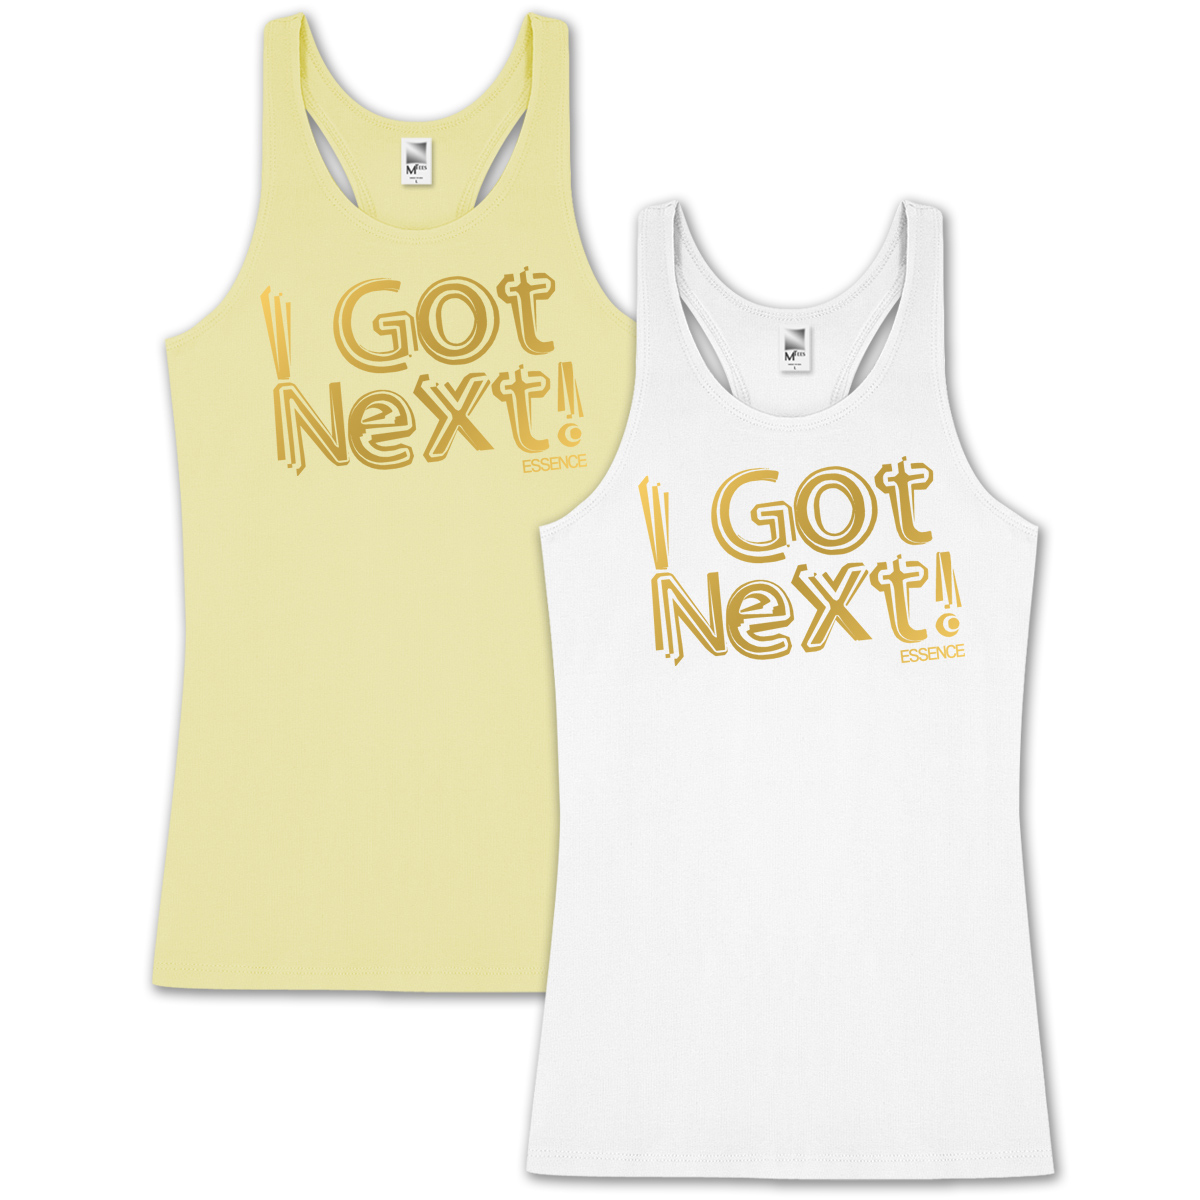 """I Got Next"" Racerback Tanks"